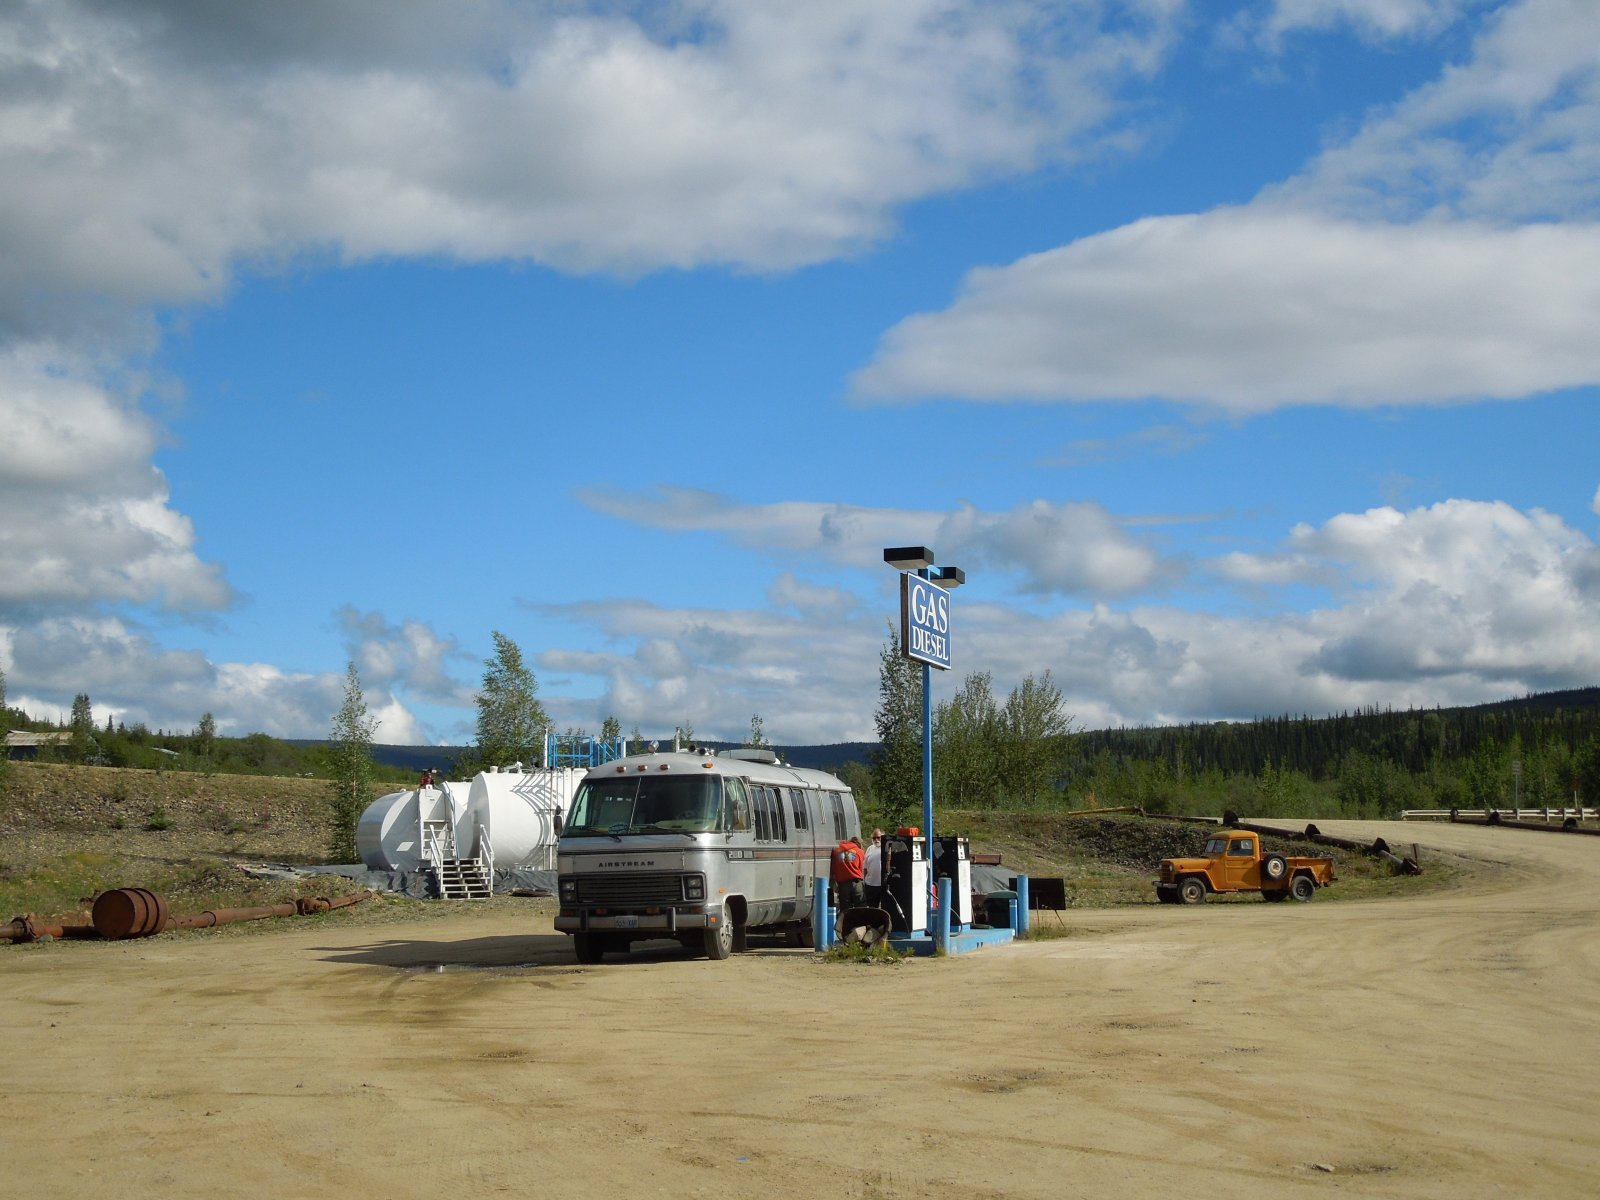 Click image for larger version  Name:Tok to Chicken to Dawson City 099.jpg Views:65 Size:254.4 KB ID:221637